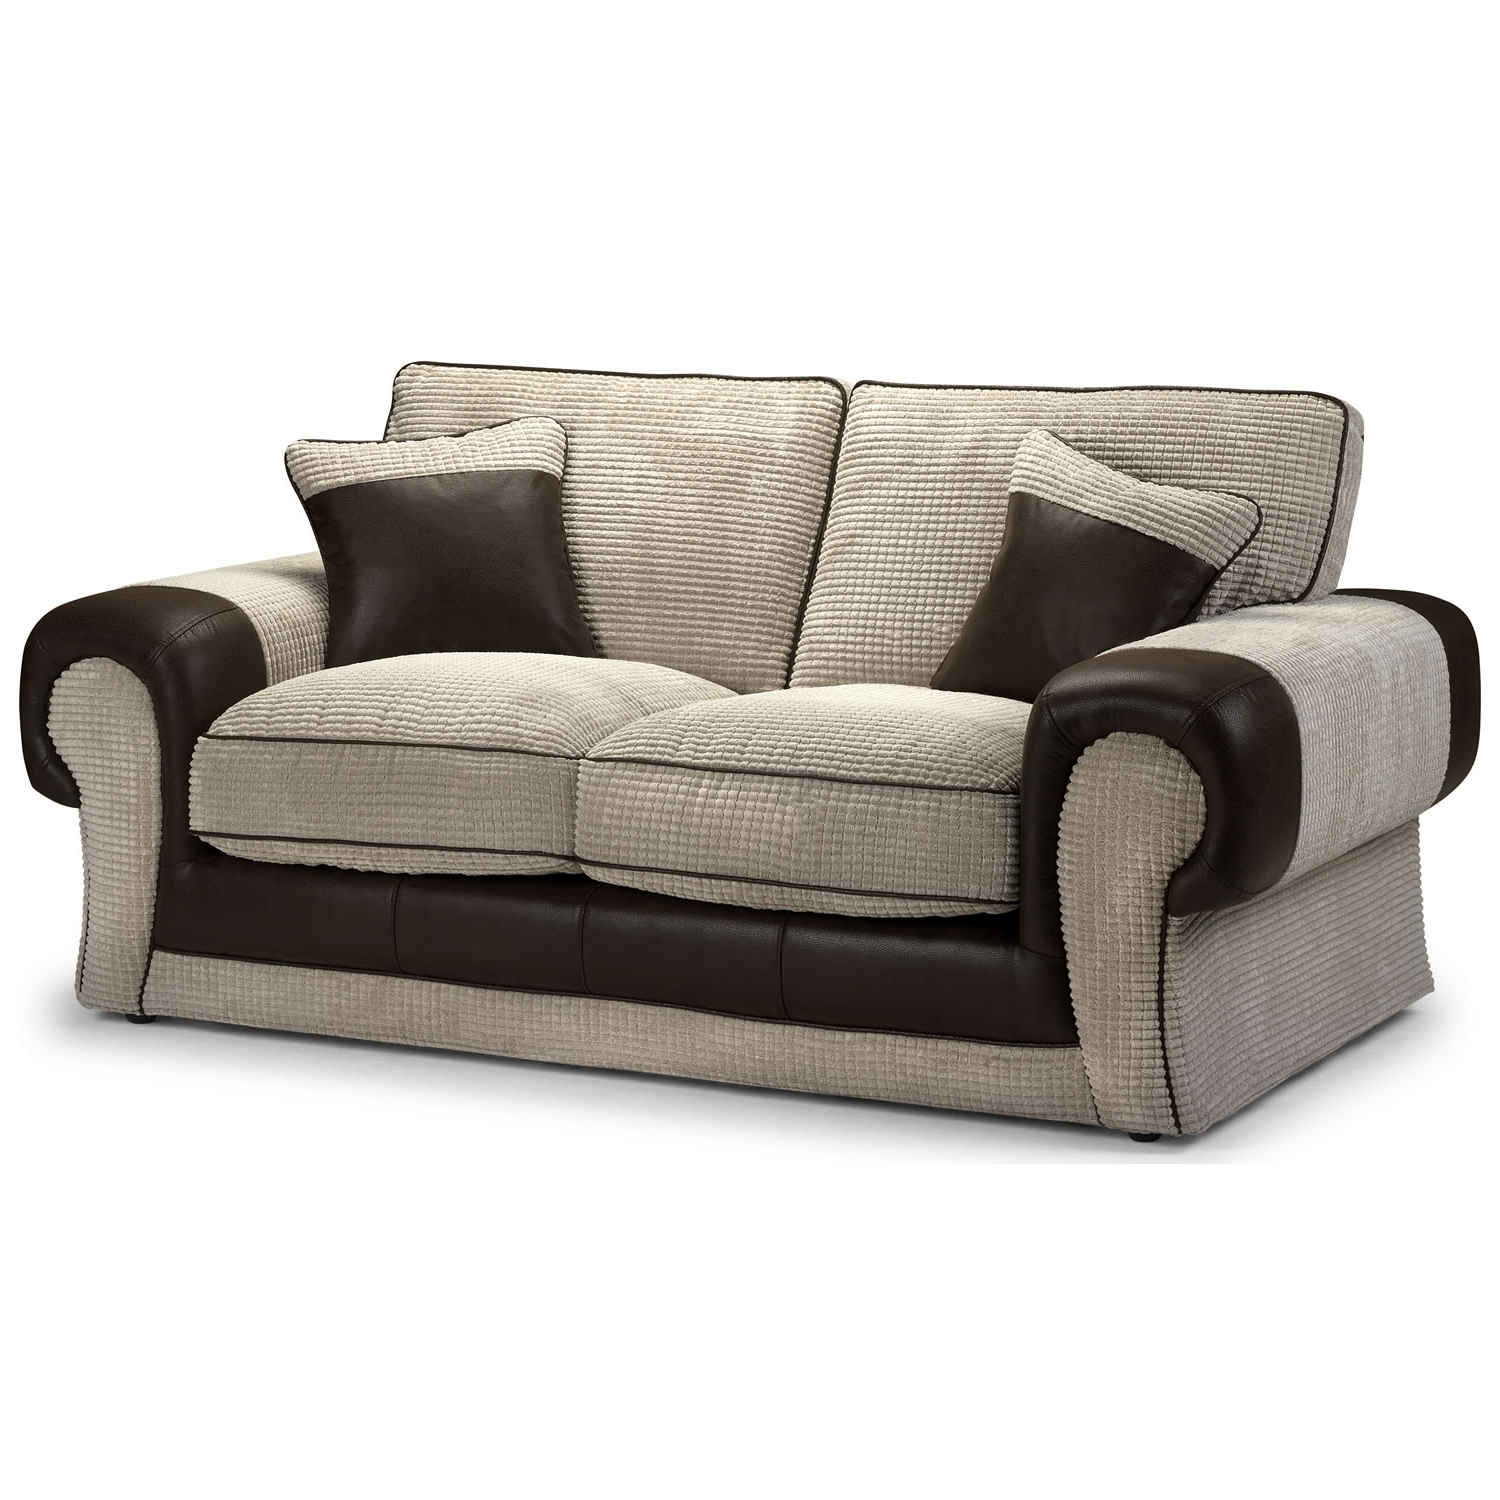 Tangent 2 Seater Sofa – Next Day Delivery Tangent 2 Seater Sofa Within Most Recent 2 Seater Sofas (View 14 of 20)